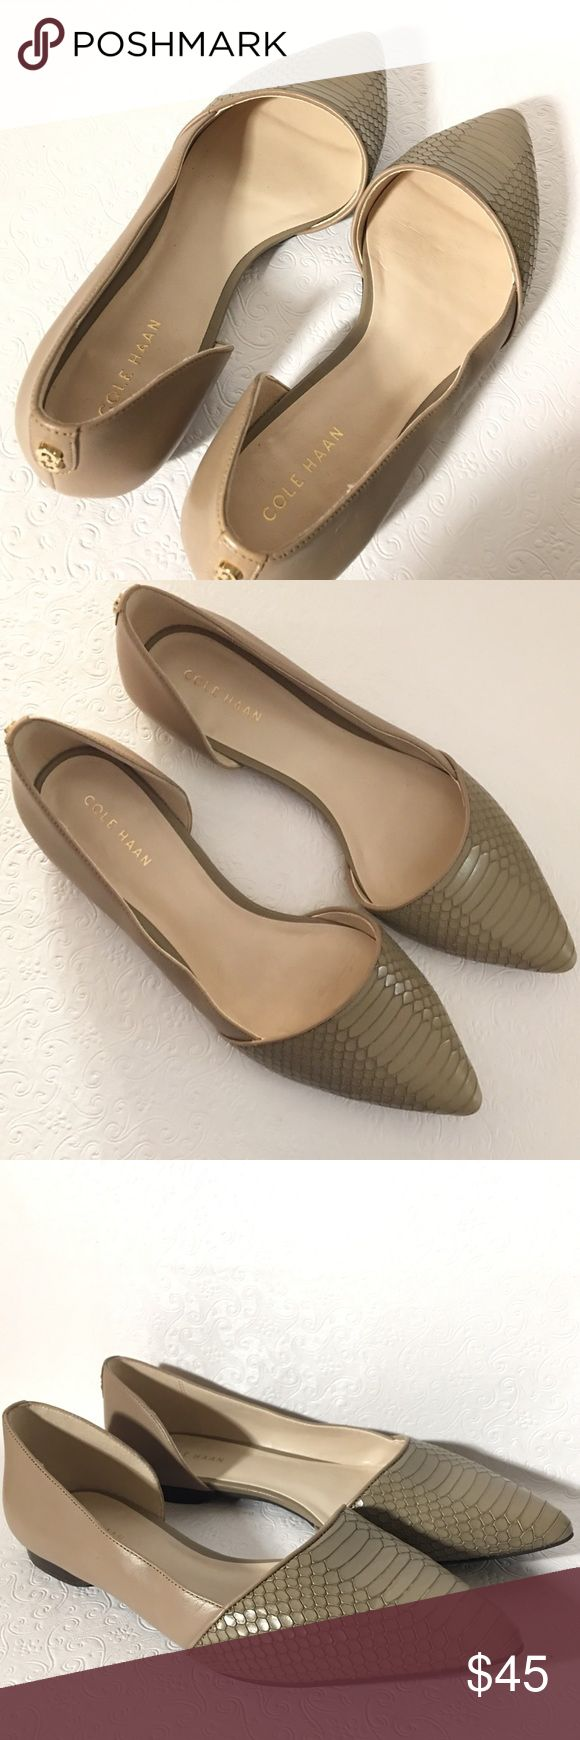 Cole Haan Amalia Skimmer flats Like new condition True to size- 6B standard width   - Pointed toe - Contrast print - d'Orsay construction - Imported  Leather upper and sole Olive green/ taupe Cole Haan Shoes Flats & Loafers